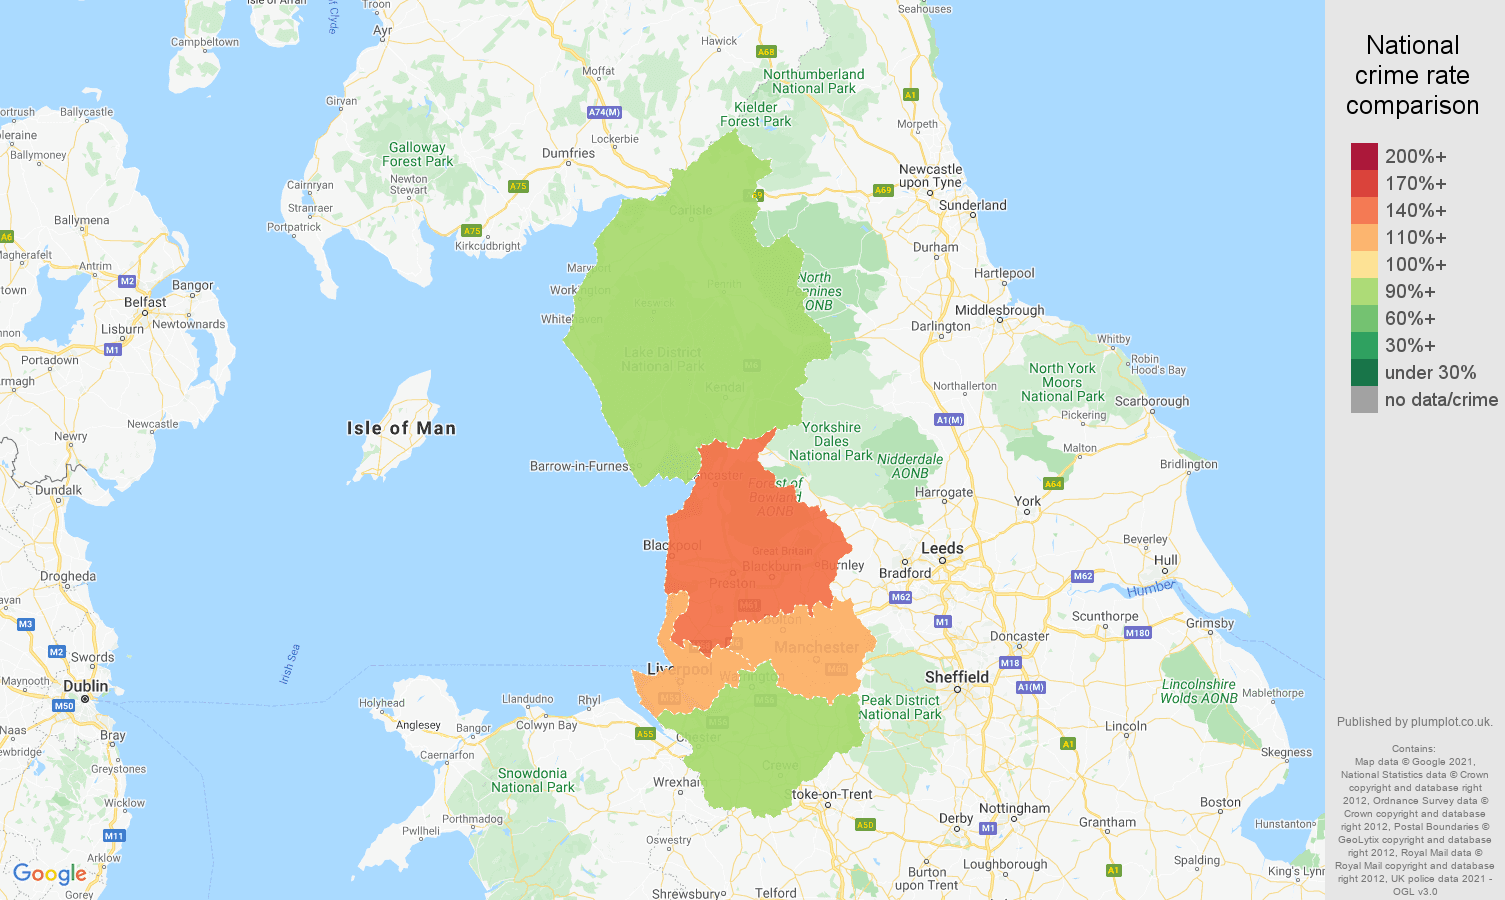 North West violent crime rate comparison map